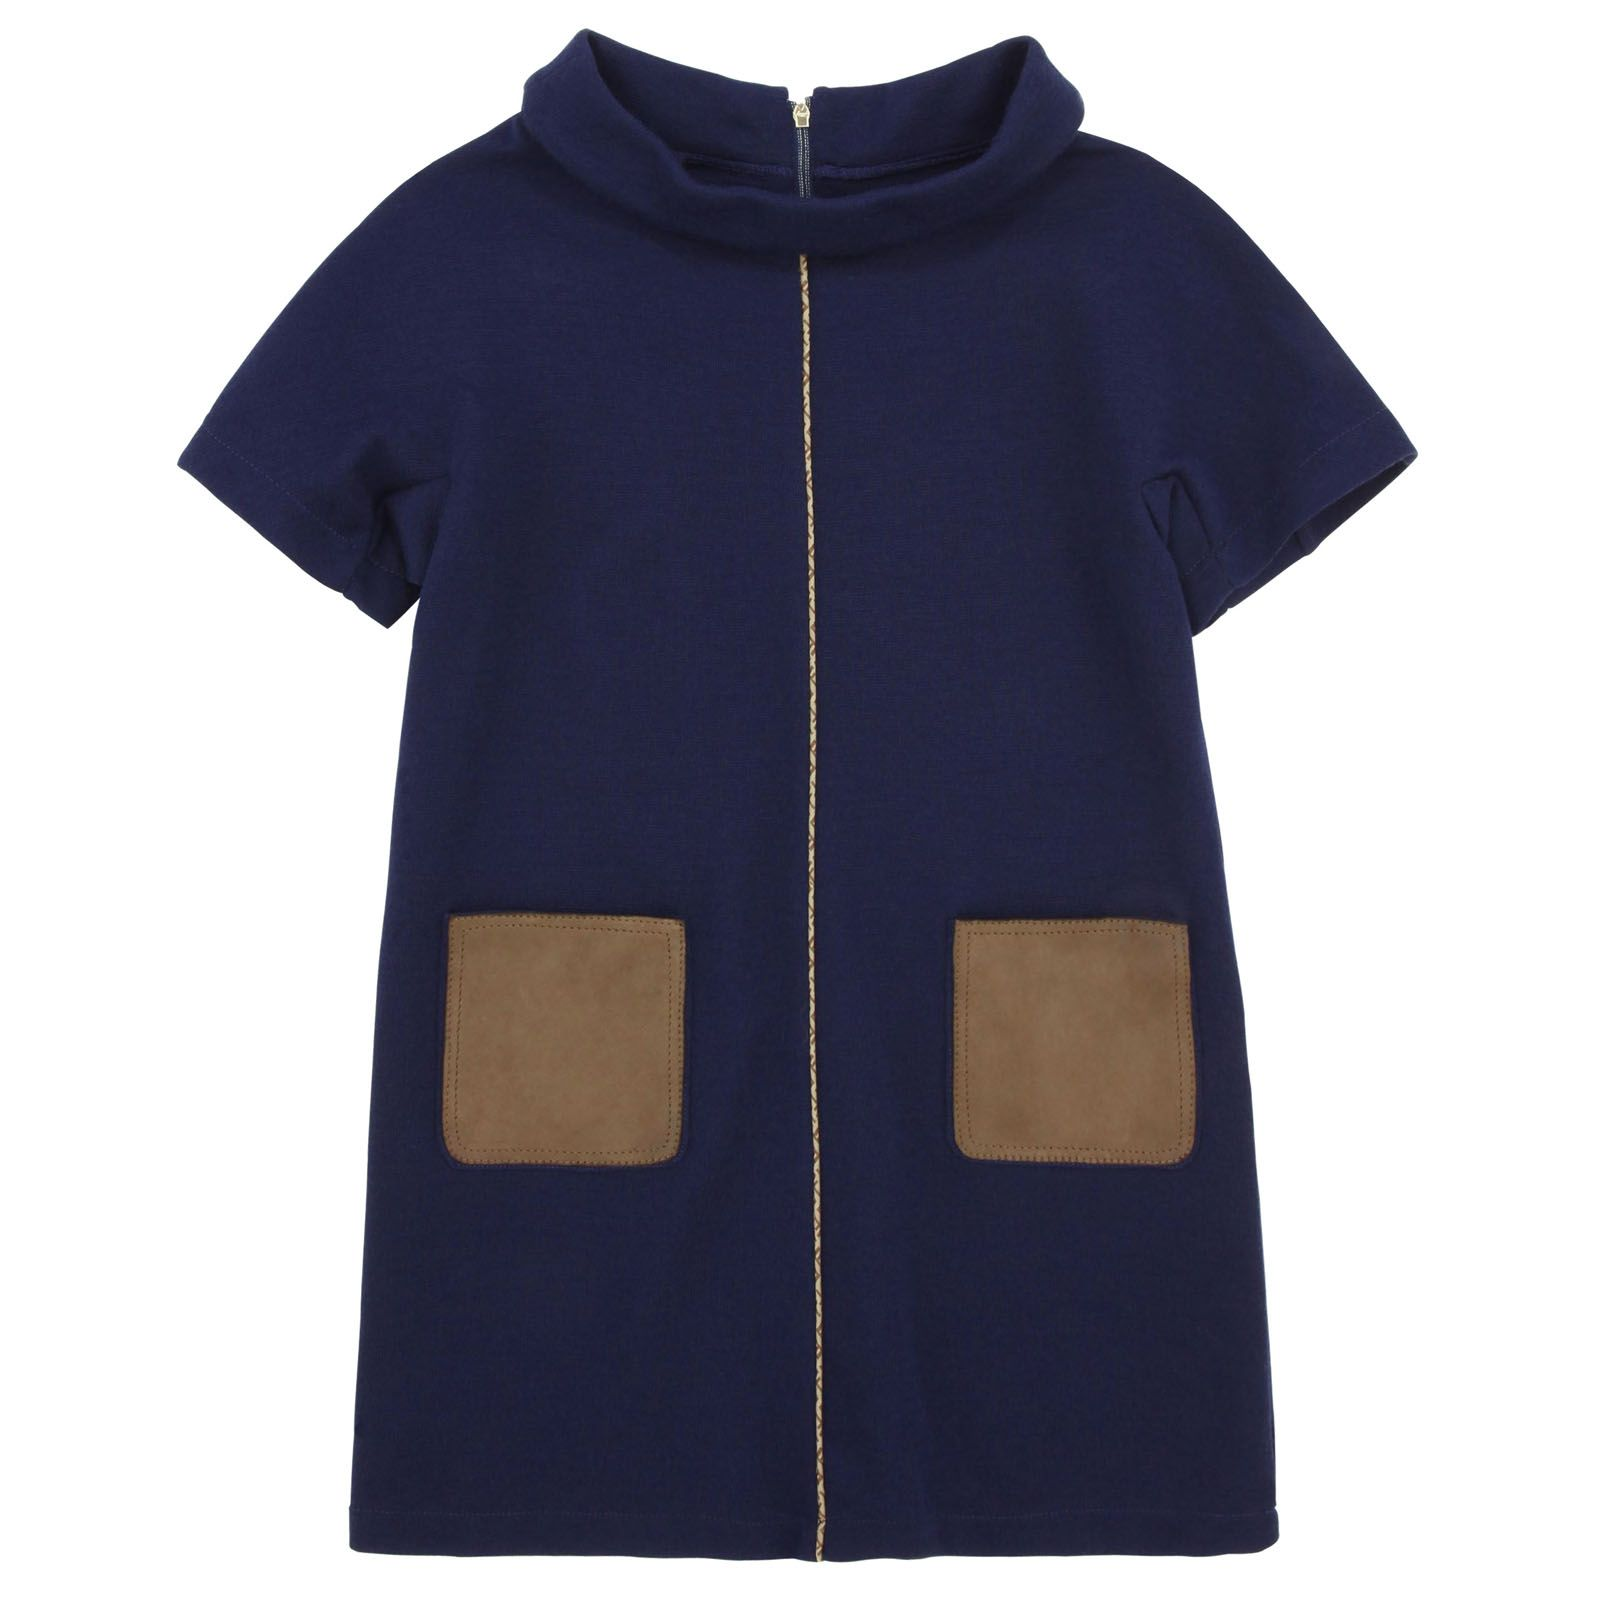 Navy blue dress made of soft and warm knit (with 50% wool). Short sleeves. Brown leather pockets. Piping down the front. Zip fastening at the back. - 269,88 €